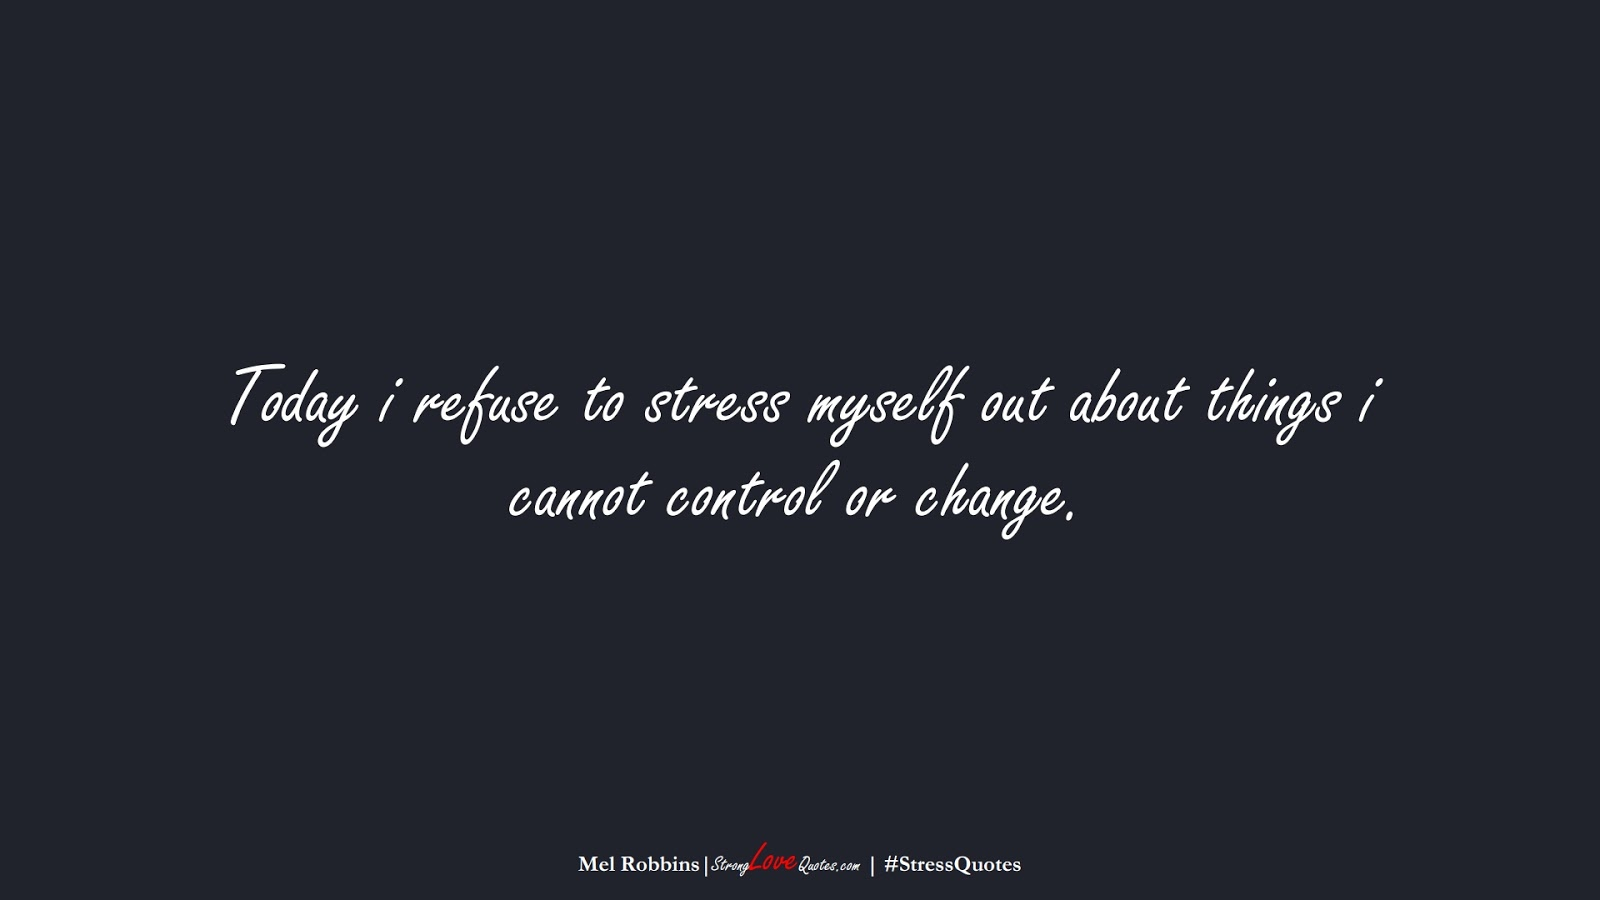 Today i refuse to stress myself out about things i cannot control or change. (Mel Robbins);  #StressQuotes